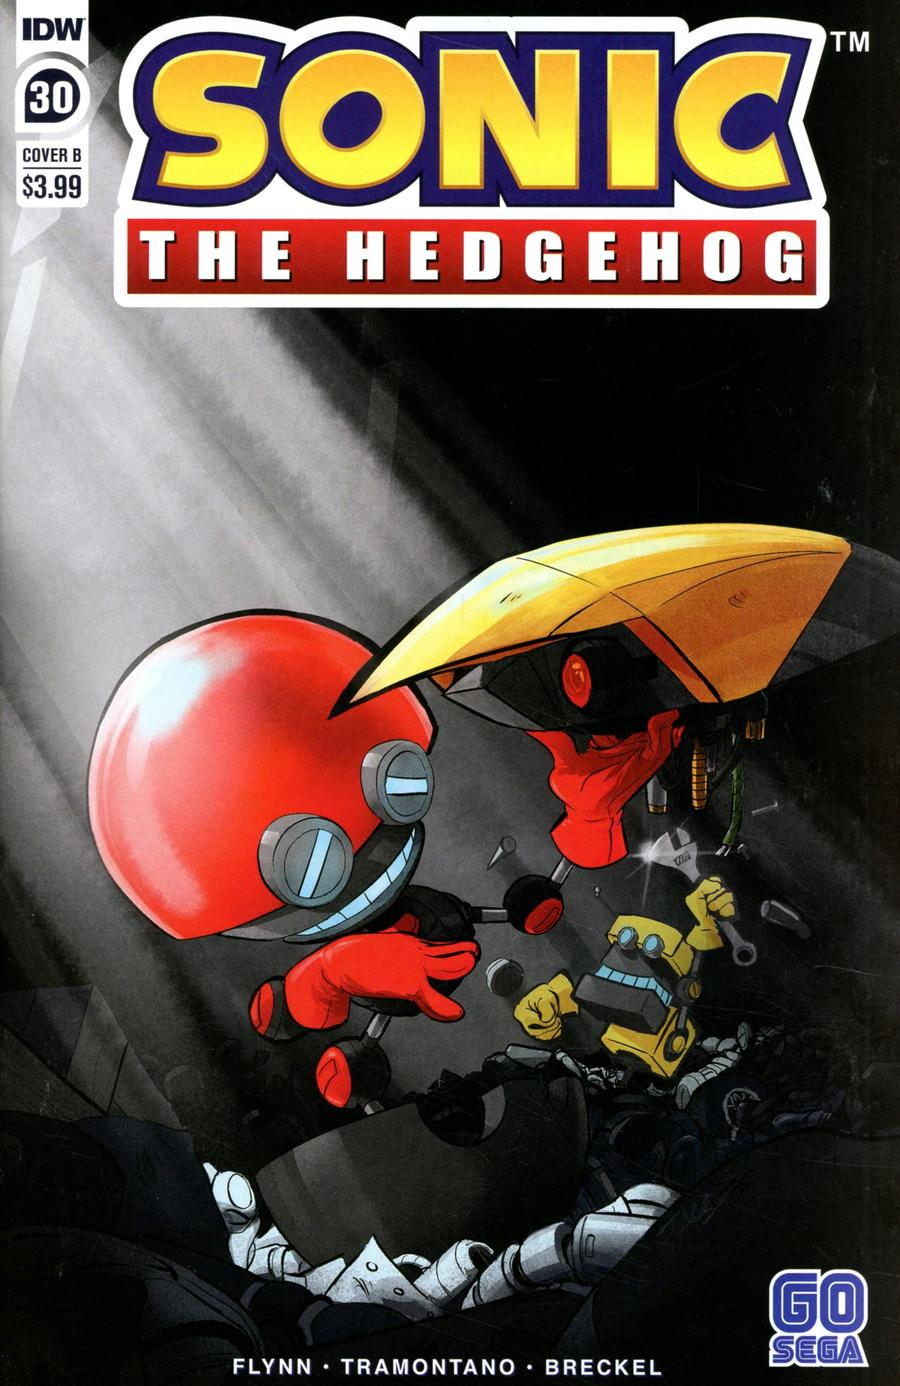 Sonic The Hedgehog Vol 3 #30 Cover B Variant Diana Skelly Cover